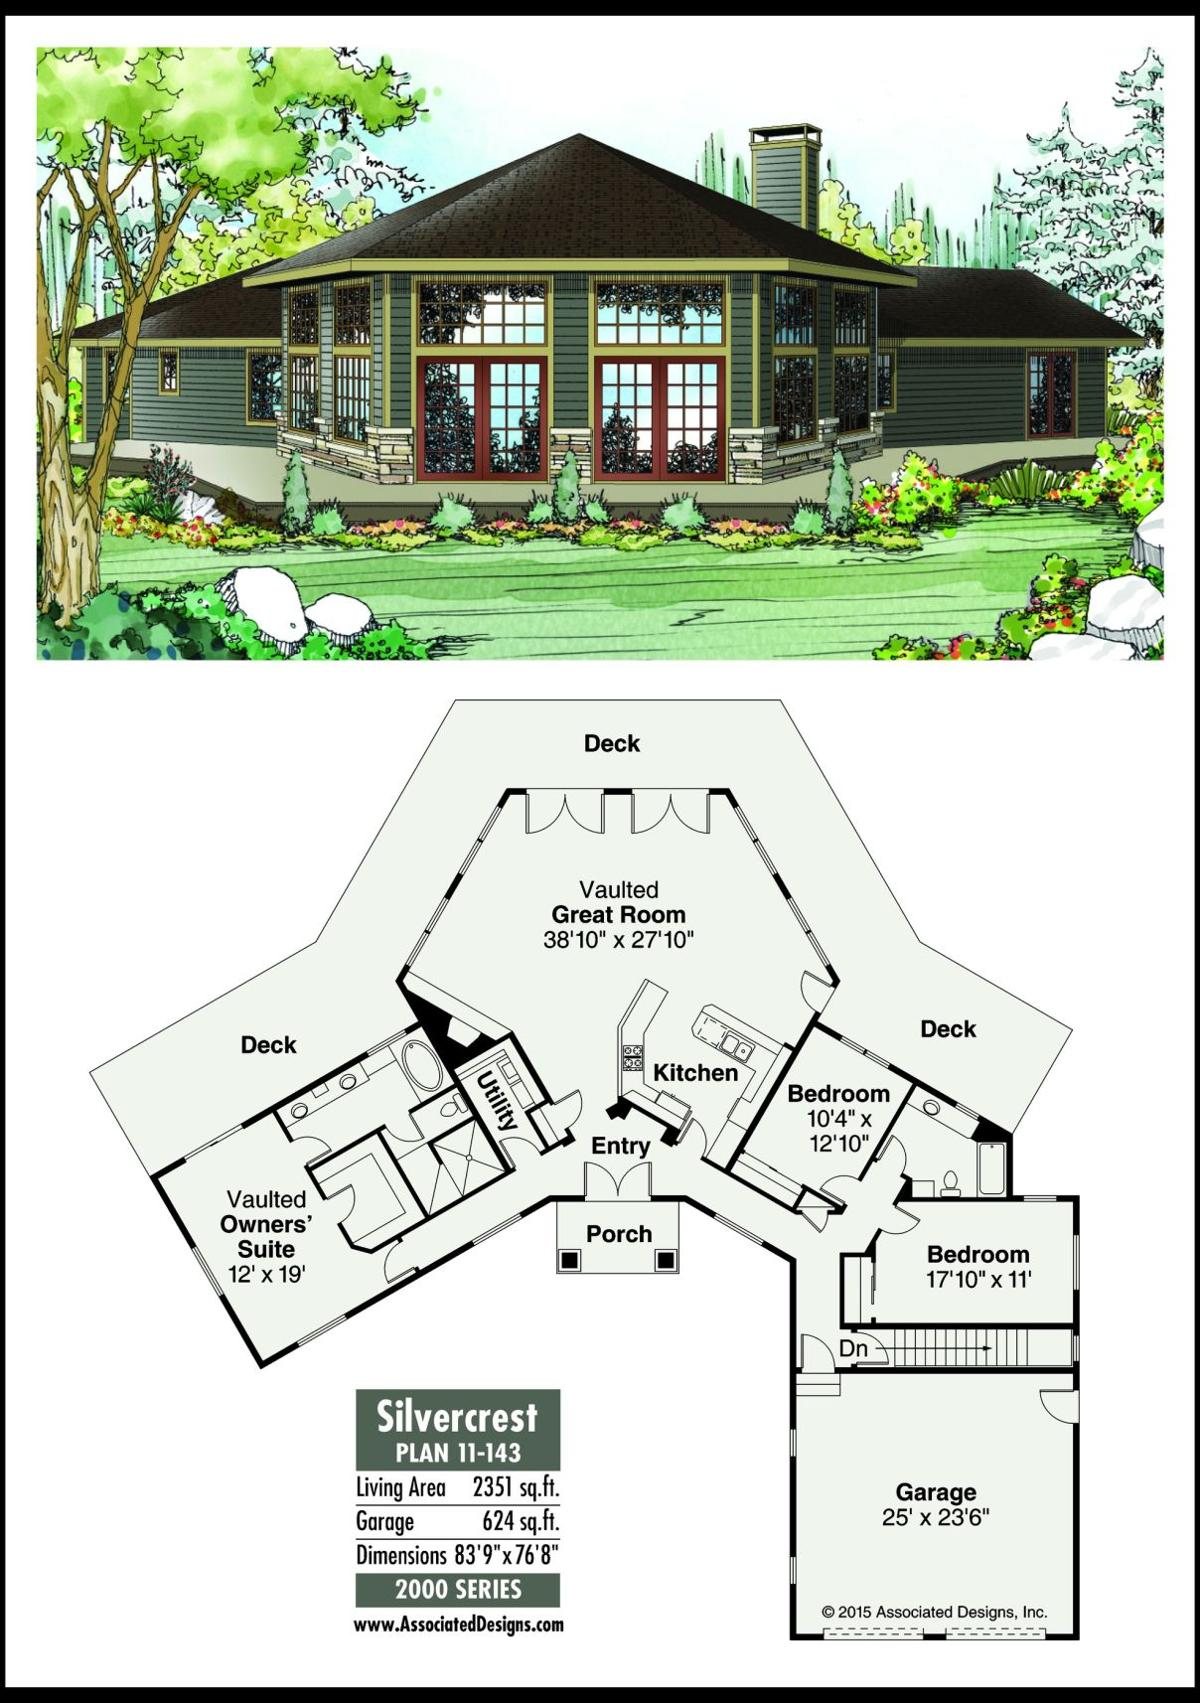 This week's house plan Silvercrest 11-143